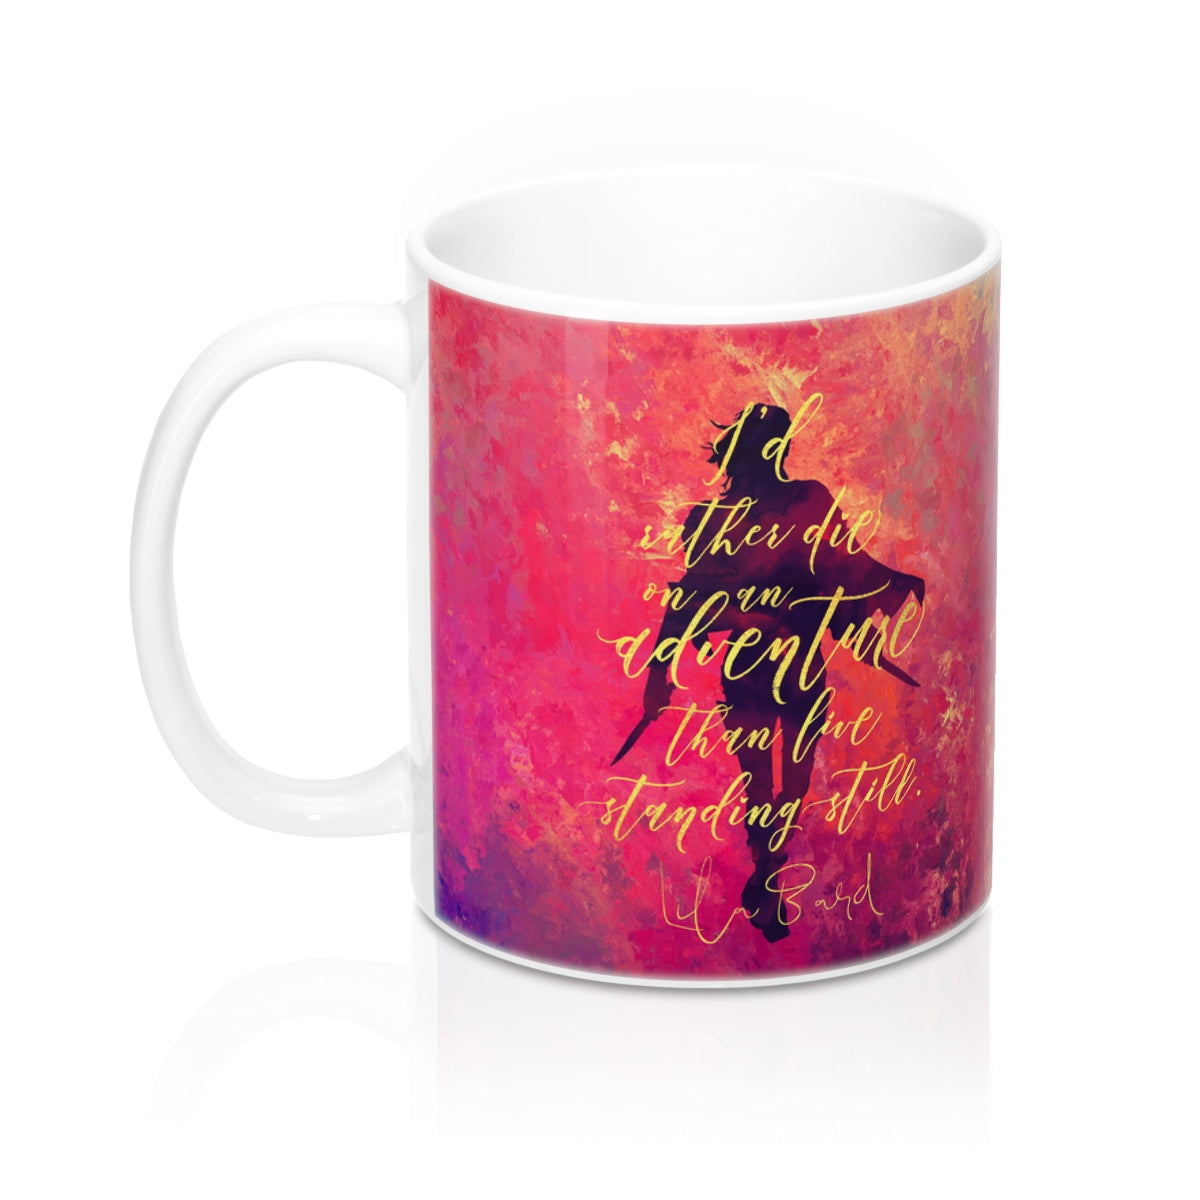 I'd rather die on an adventure... Lila Bard Quote Mug - LitLifeCo.